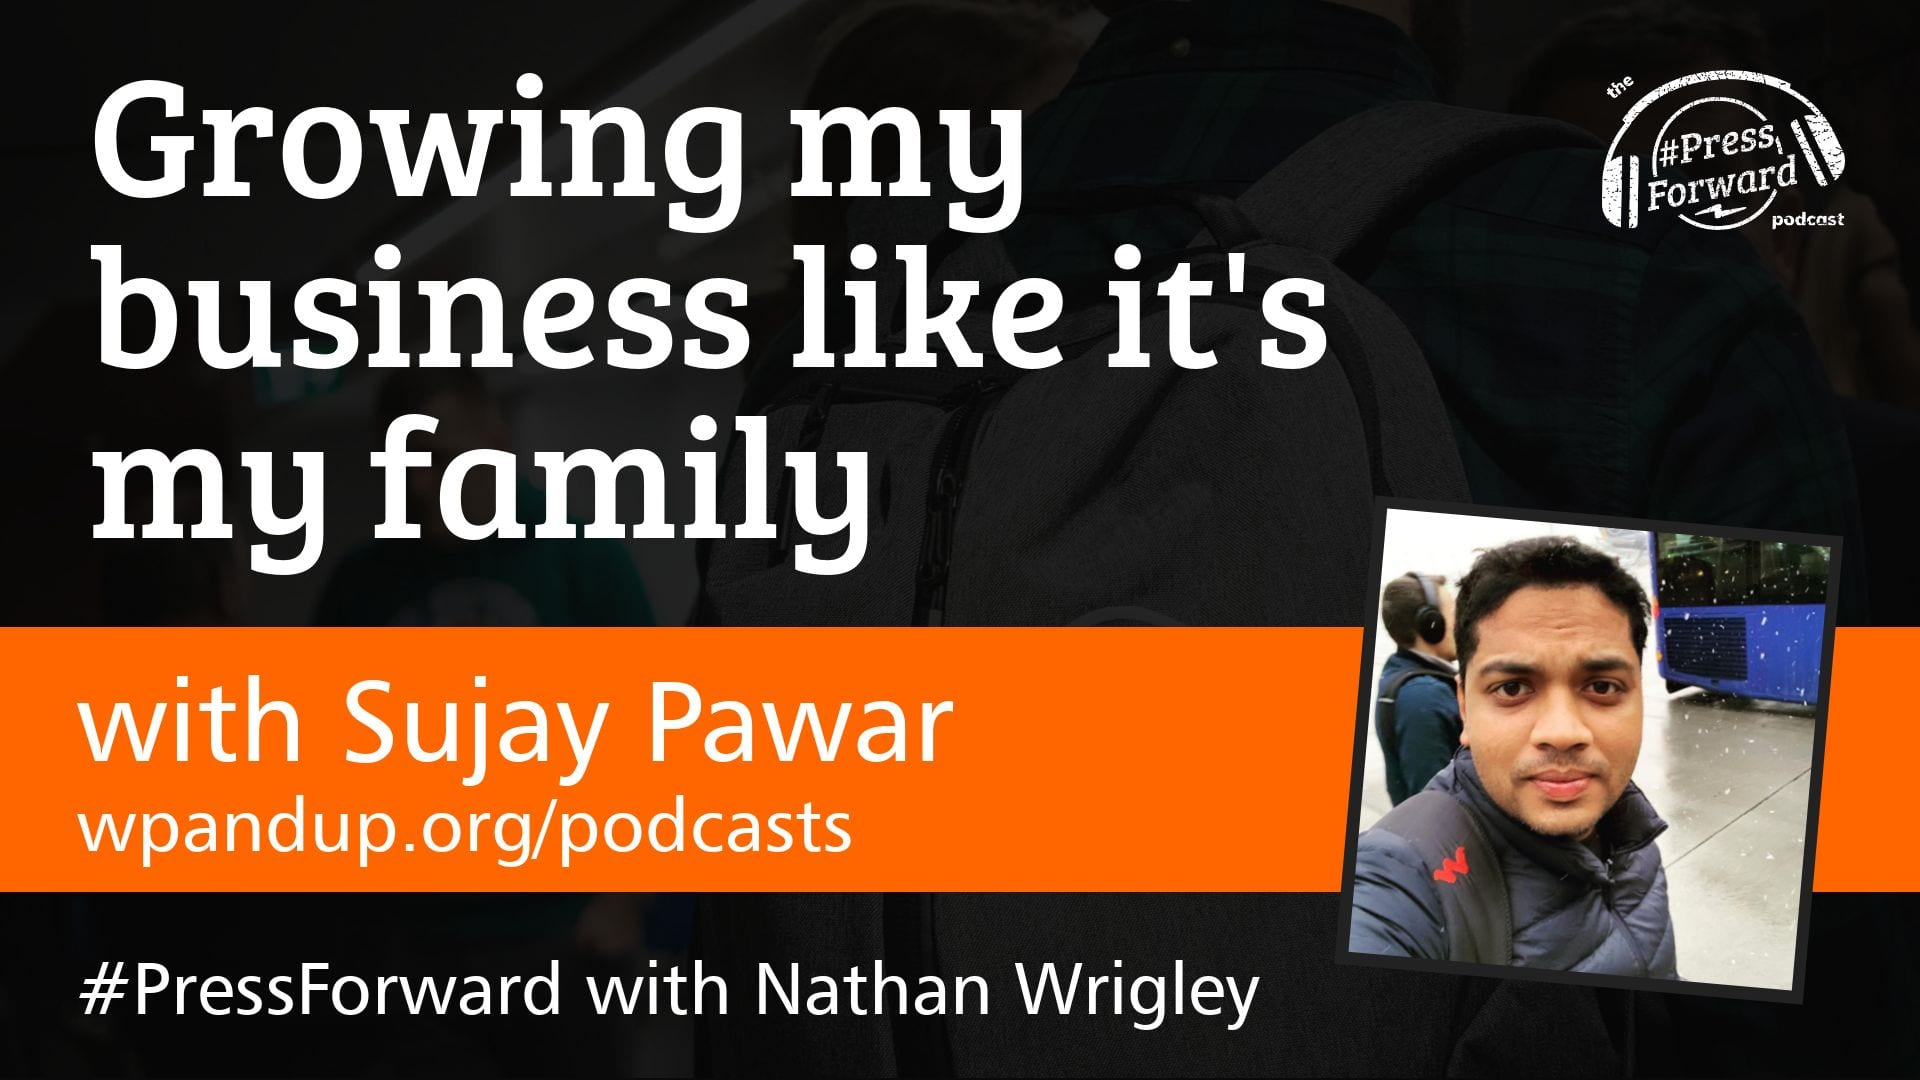 Growing my business like it's my family - #024